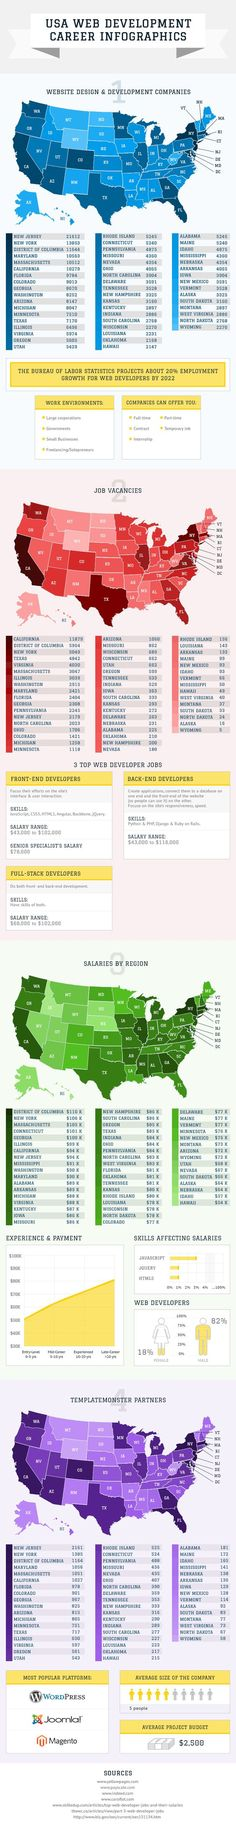 """""""USA Web Development Market and Careers"""" Interactive Map from TemplateMonster"""